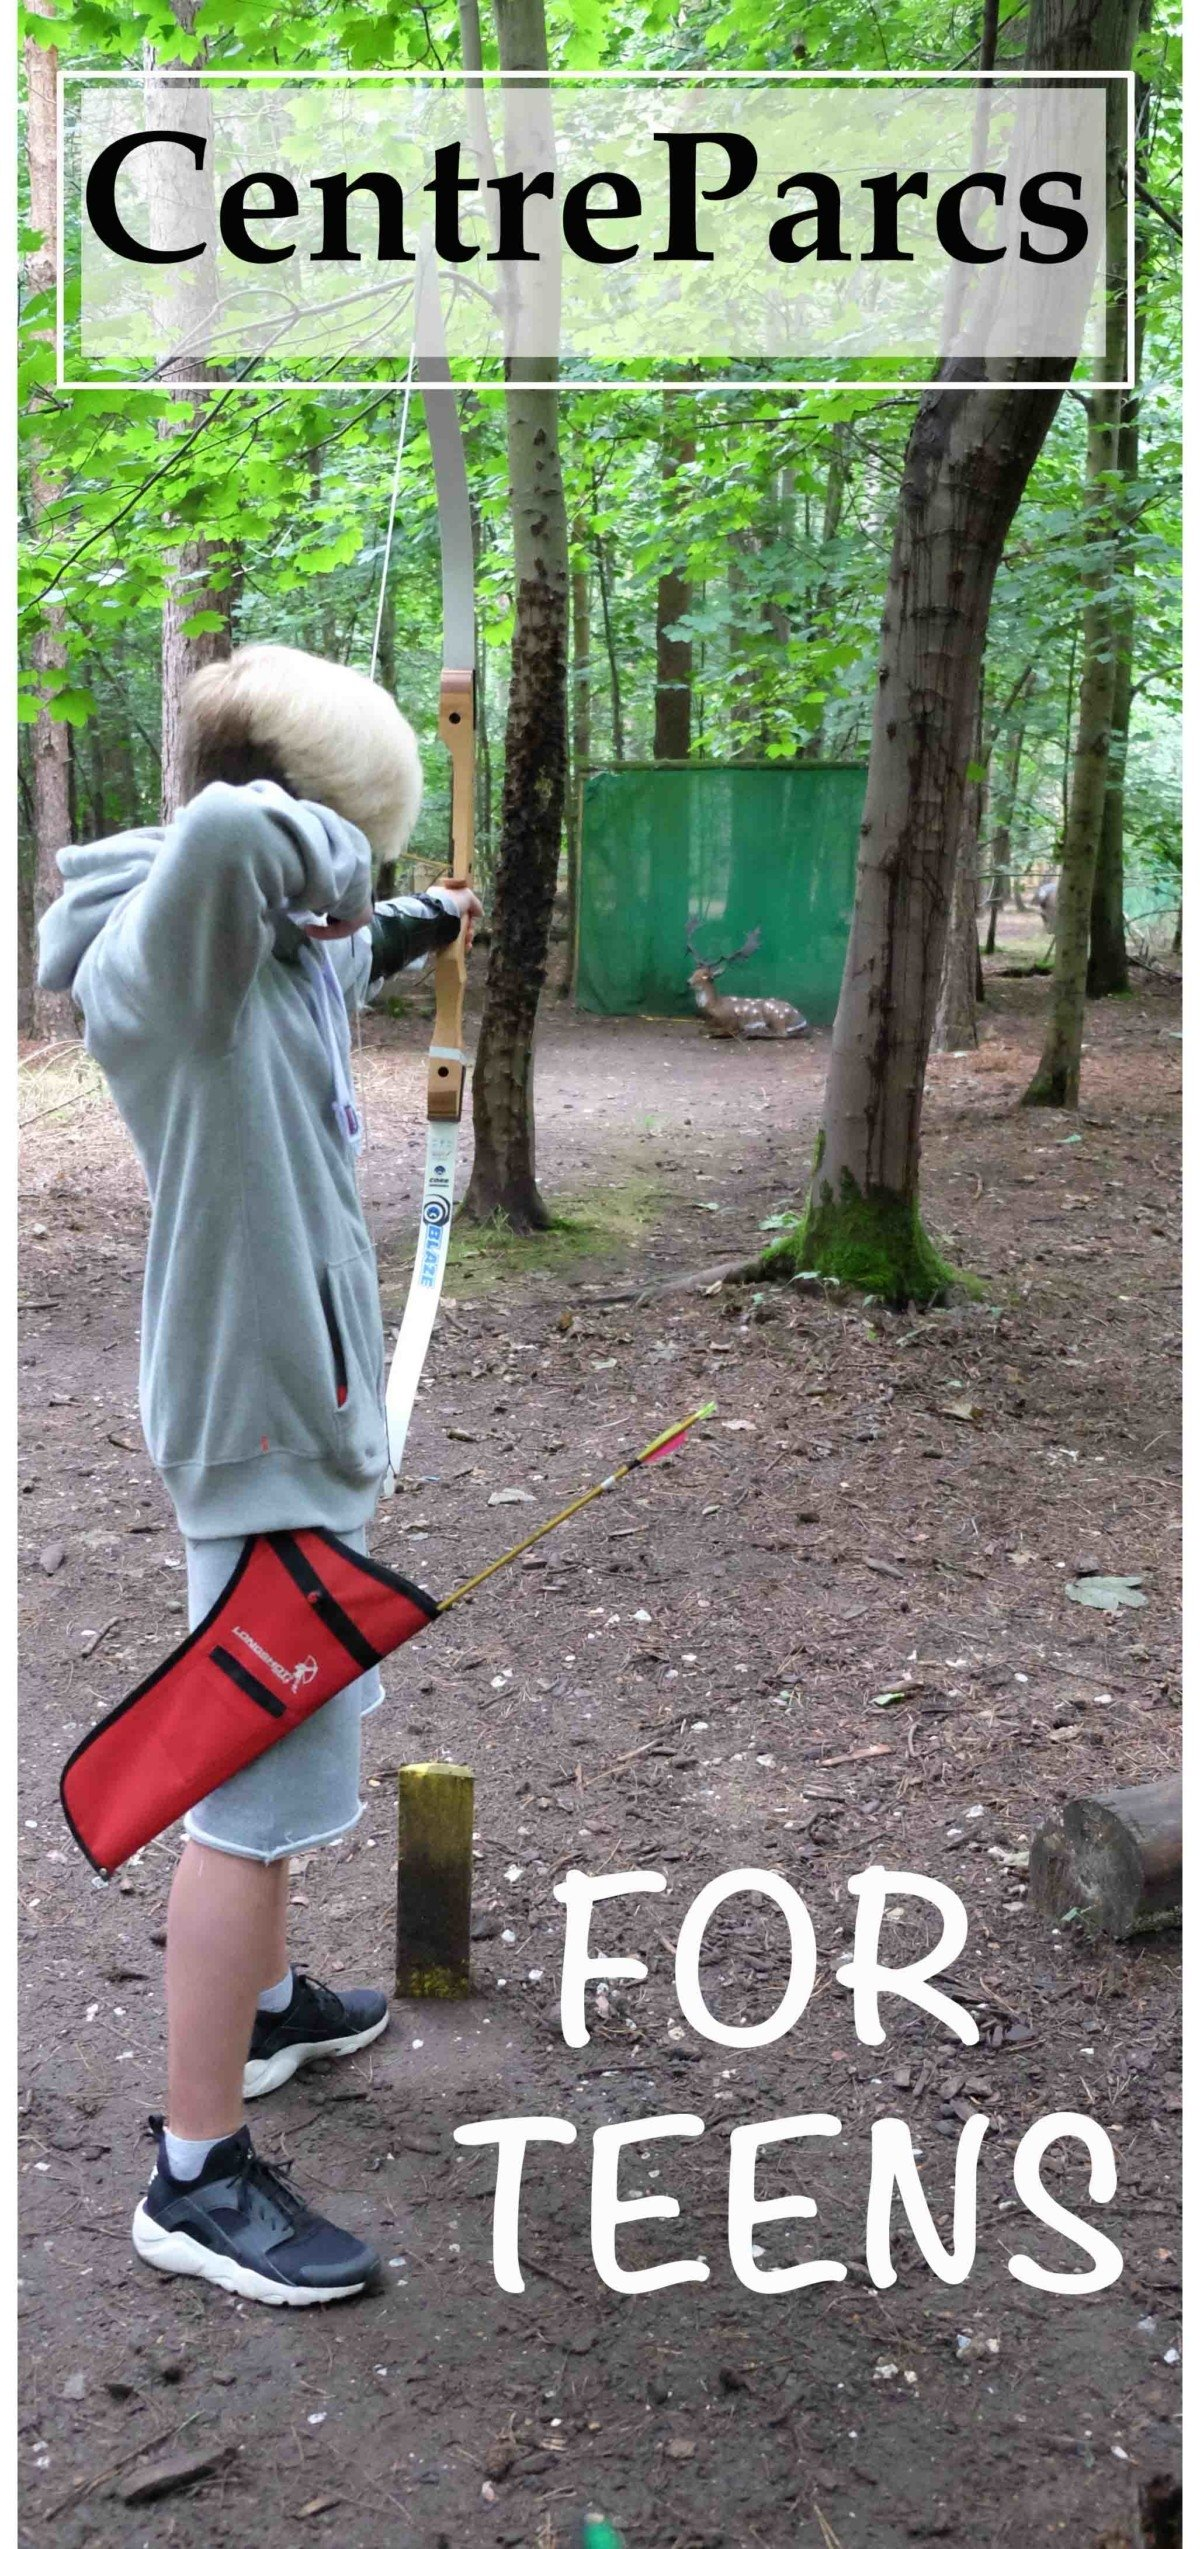 Centreparcs for teenagers Field archery, adrenaline rush experiences